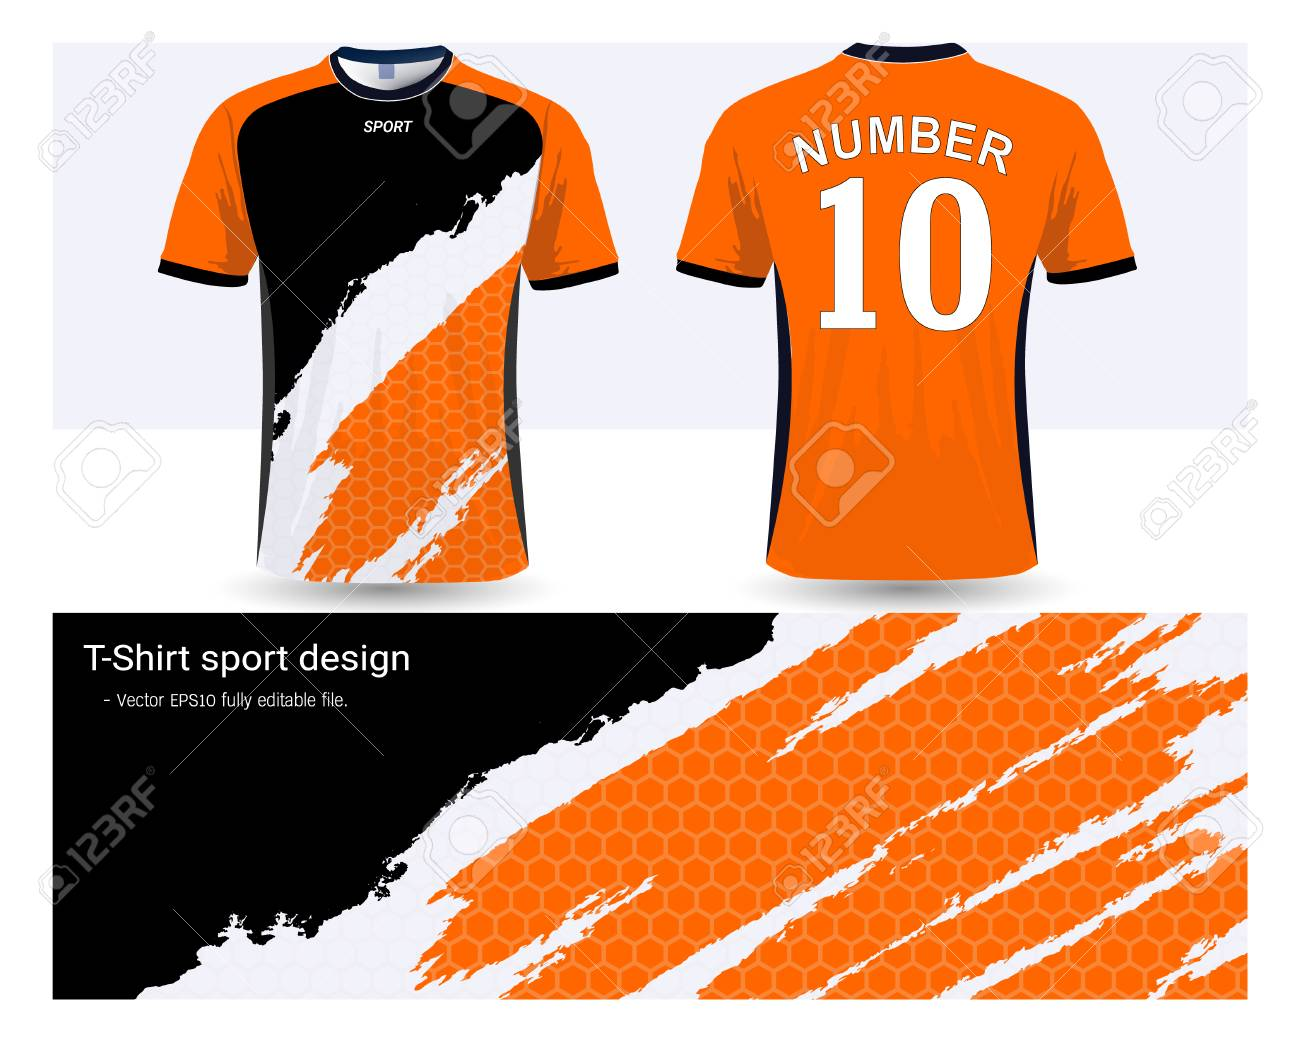 2a43a3f2eb0 Soccer jersey and t-shirt sports design template, front and back for  football club